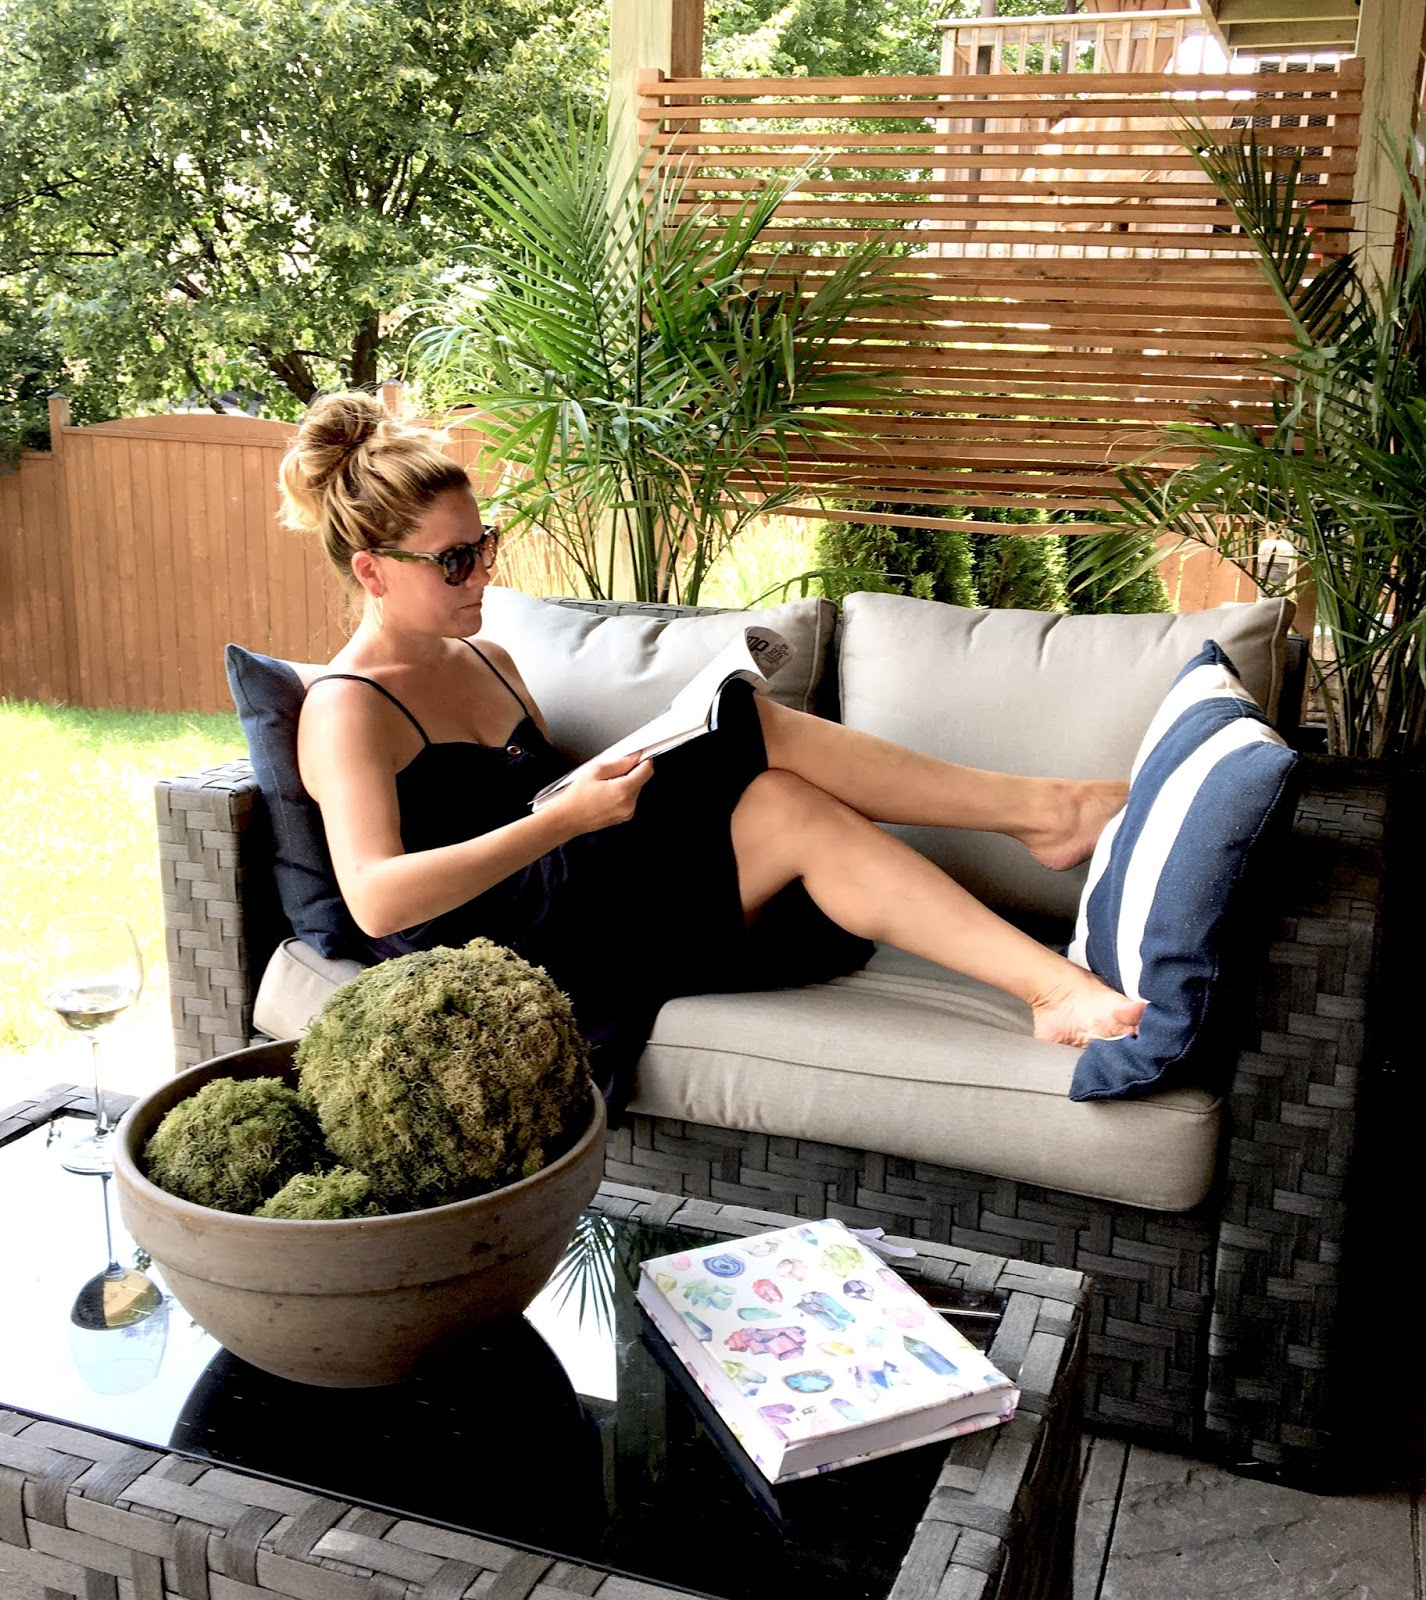 DIY Outdoor Privacy Screen - Harlow & Thistle - Home ...